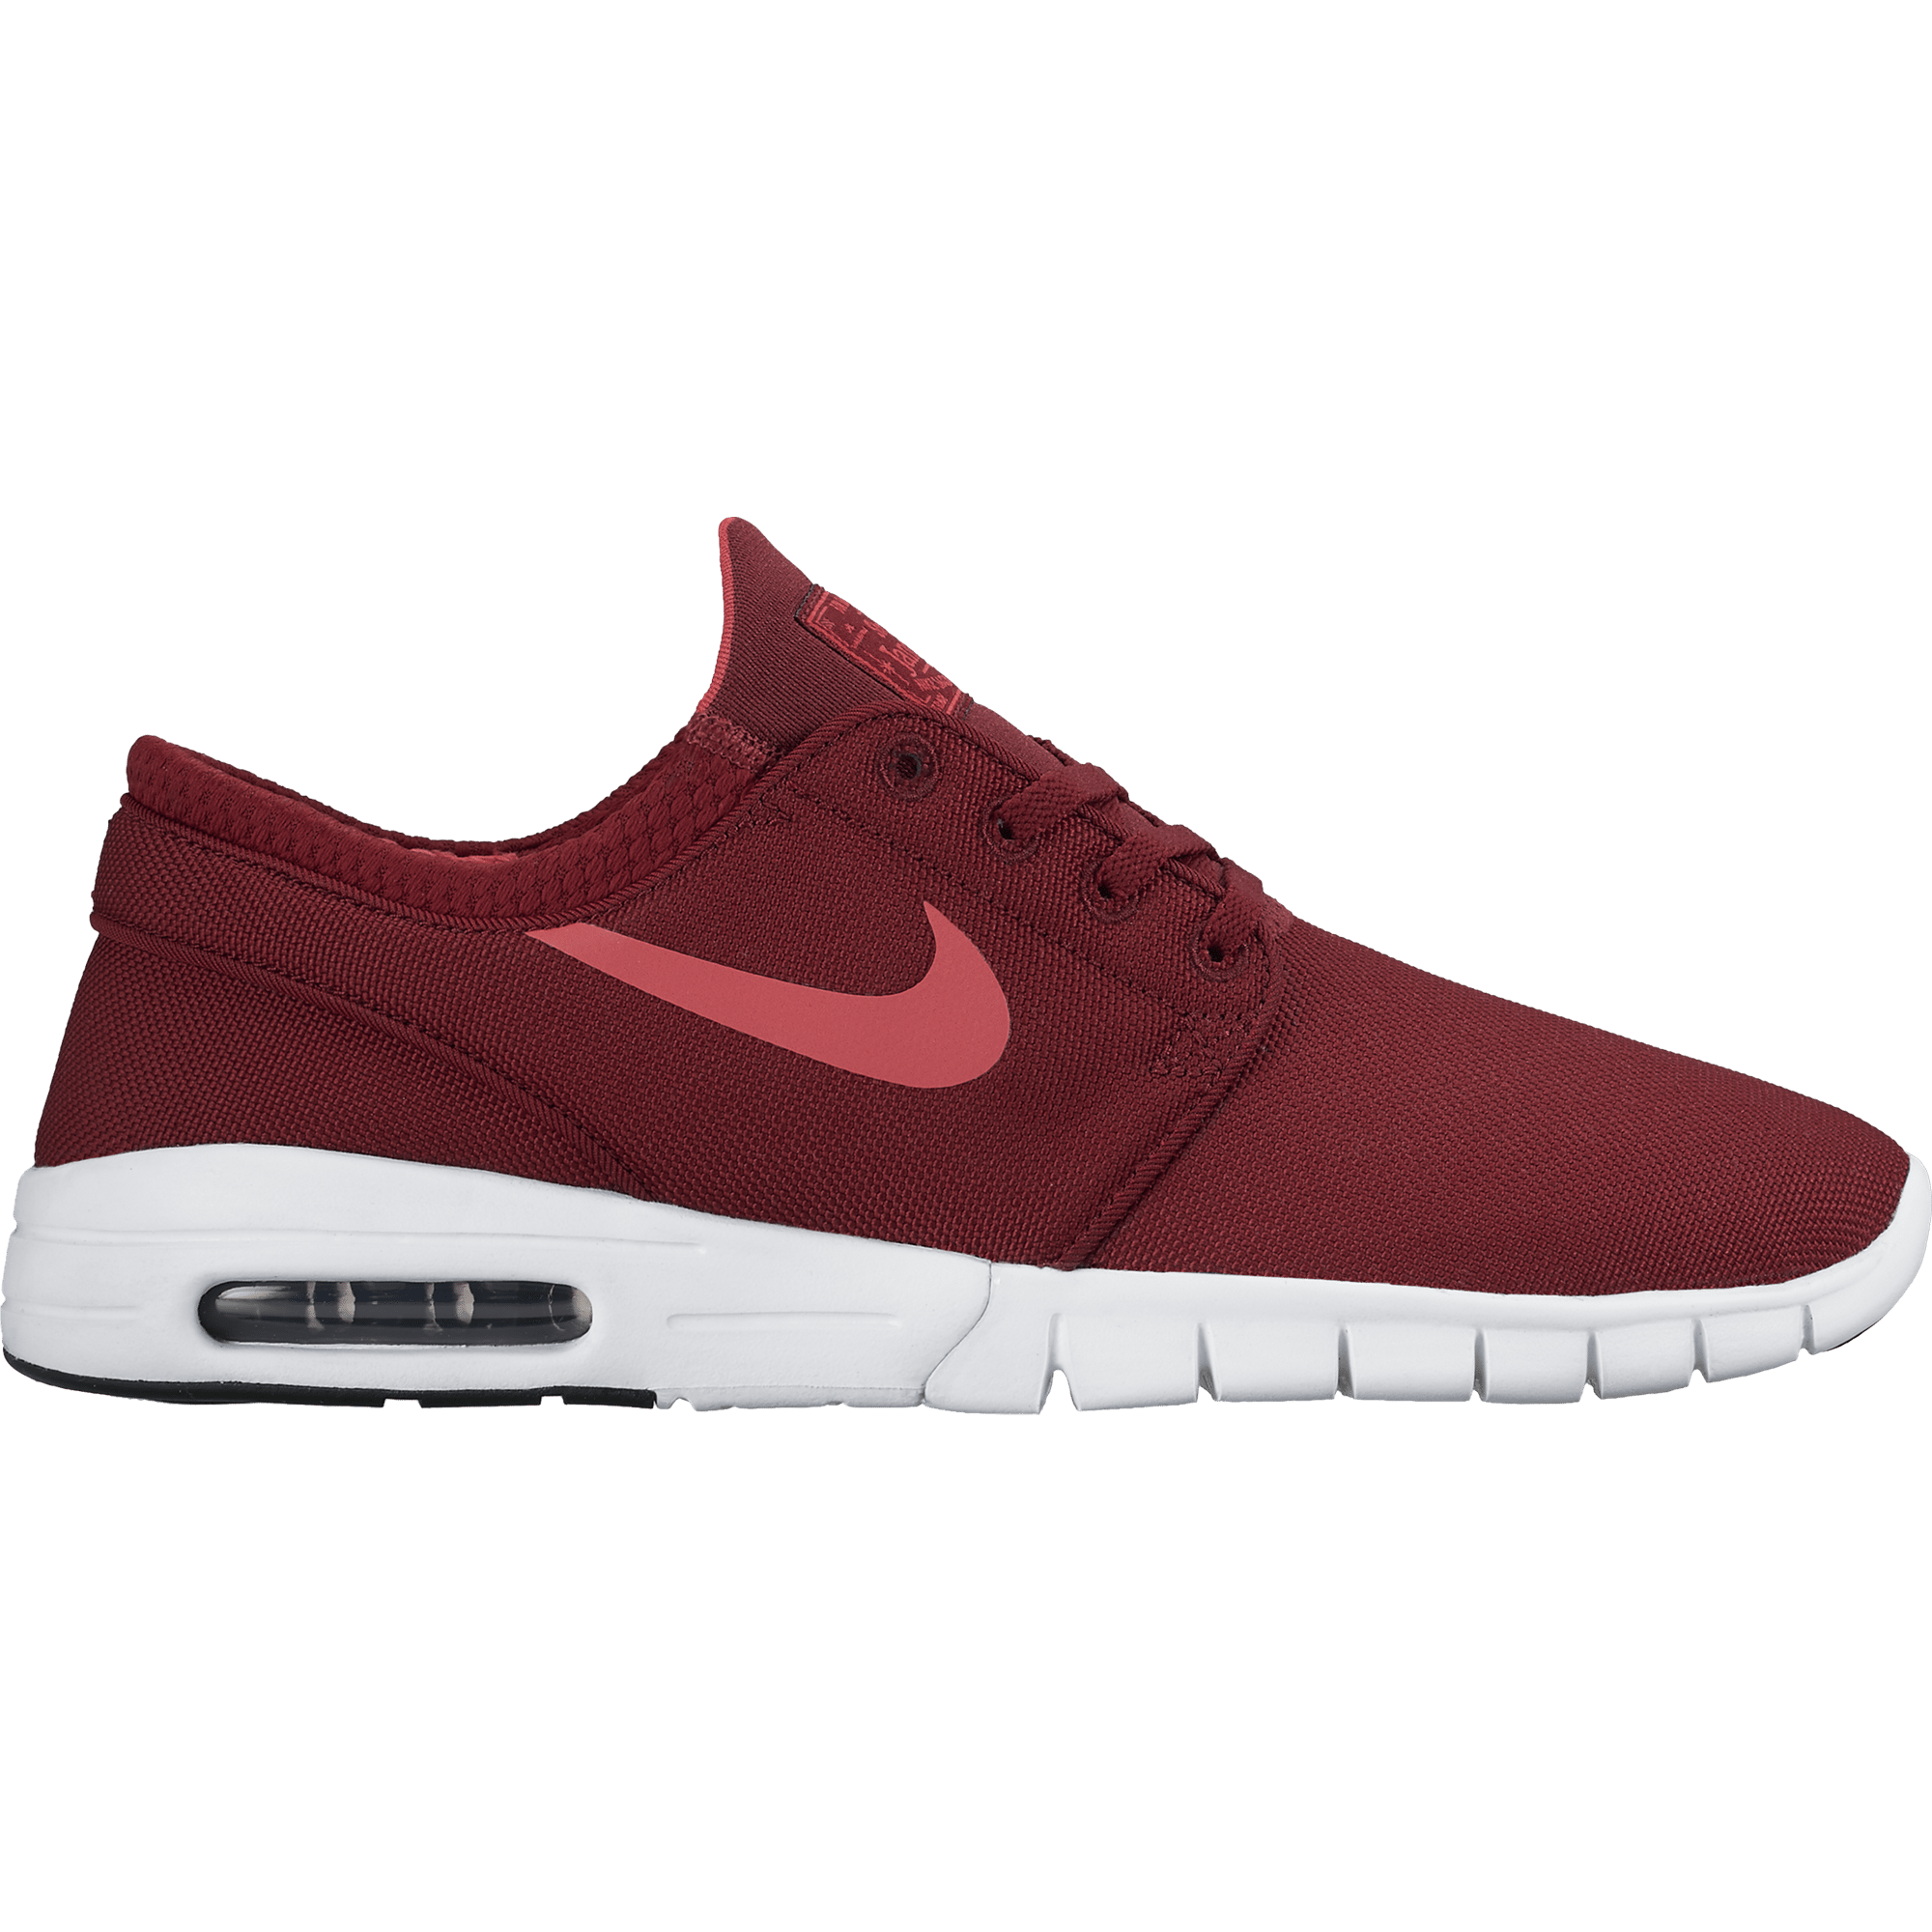 Skate shoes under 30 dollars - Free Delivery Nike Sb Stefan Janoski Max Skate Shoes Team Red Ember Glow